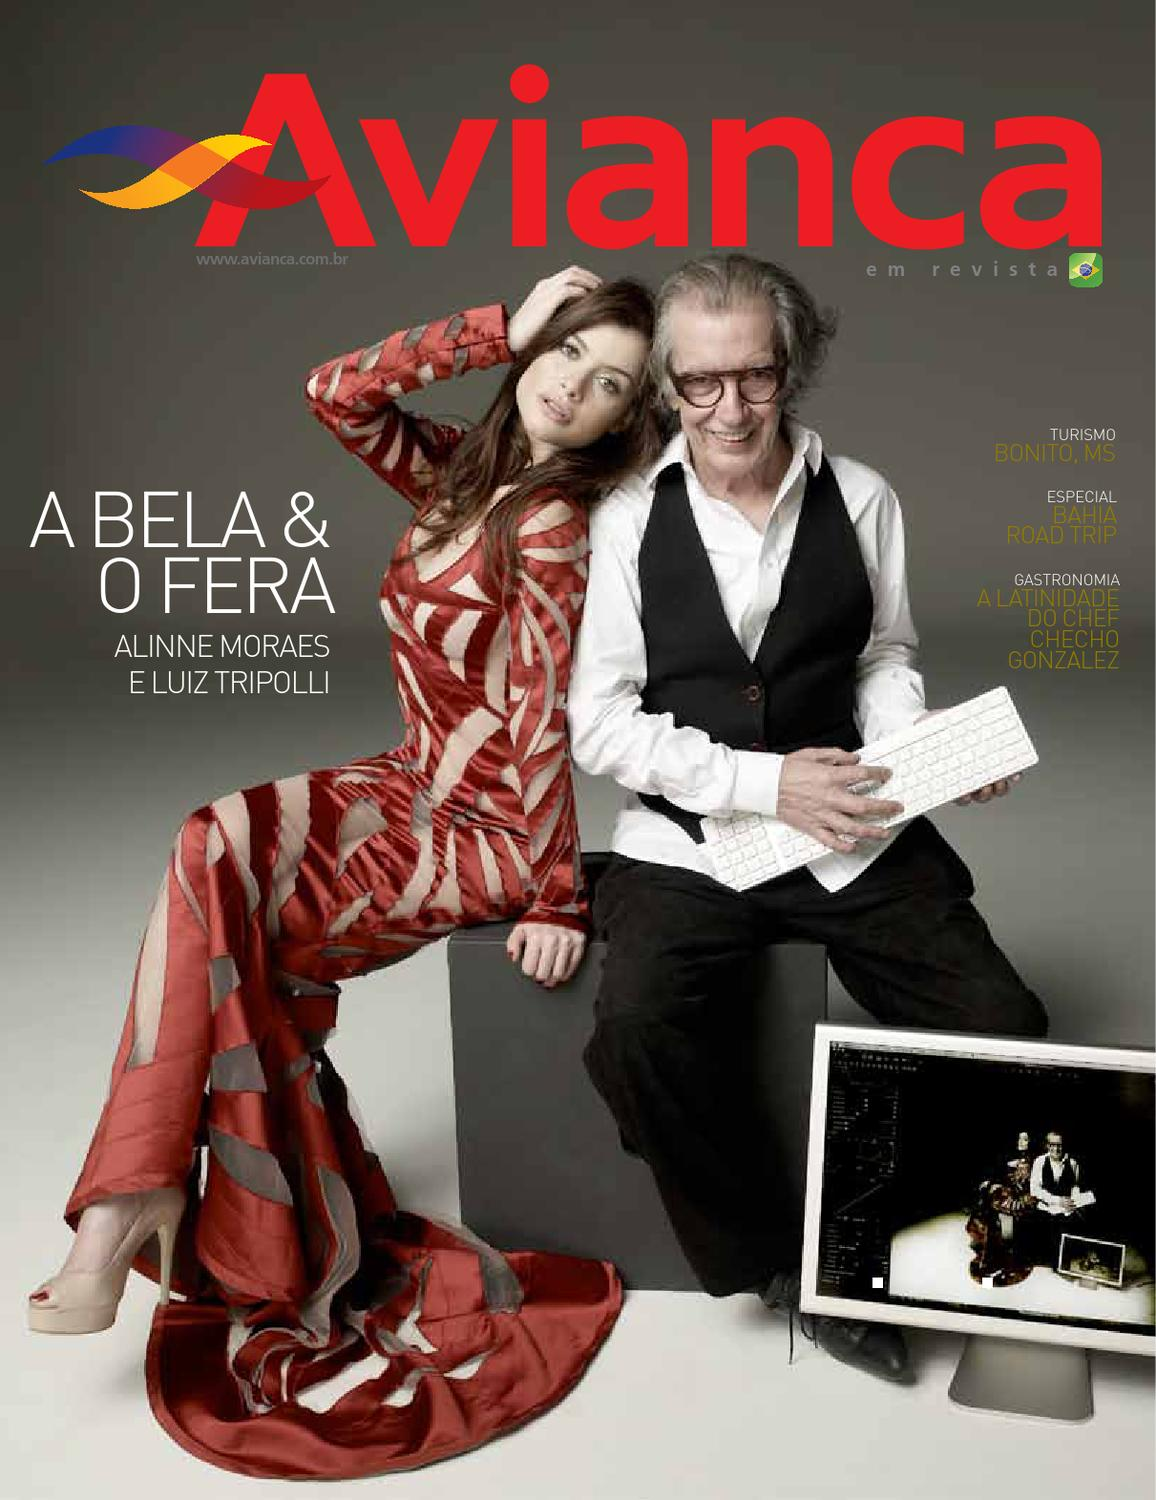 27 - Alinne Moraes Luiz Tripolli by Avianca em Revista - issuu 42be725949